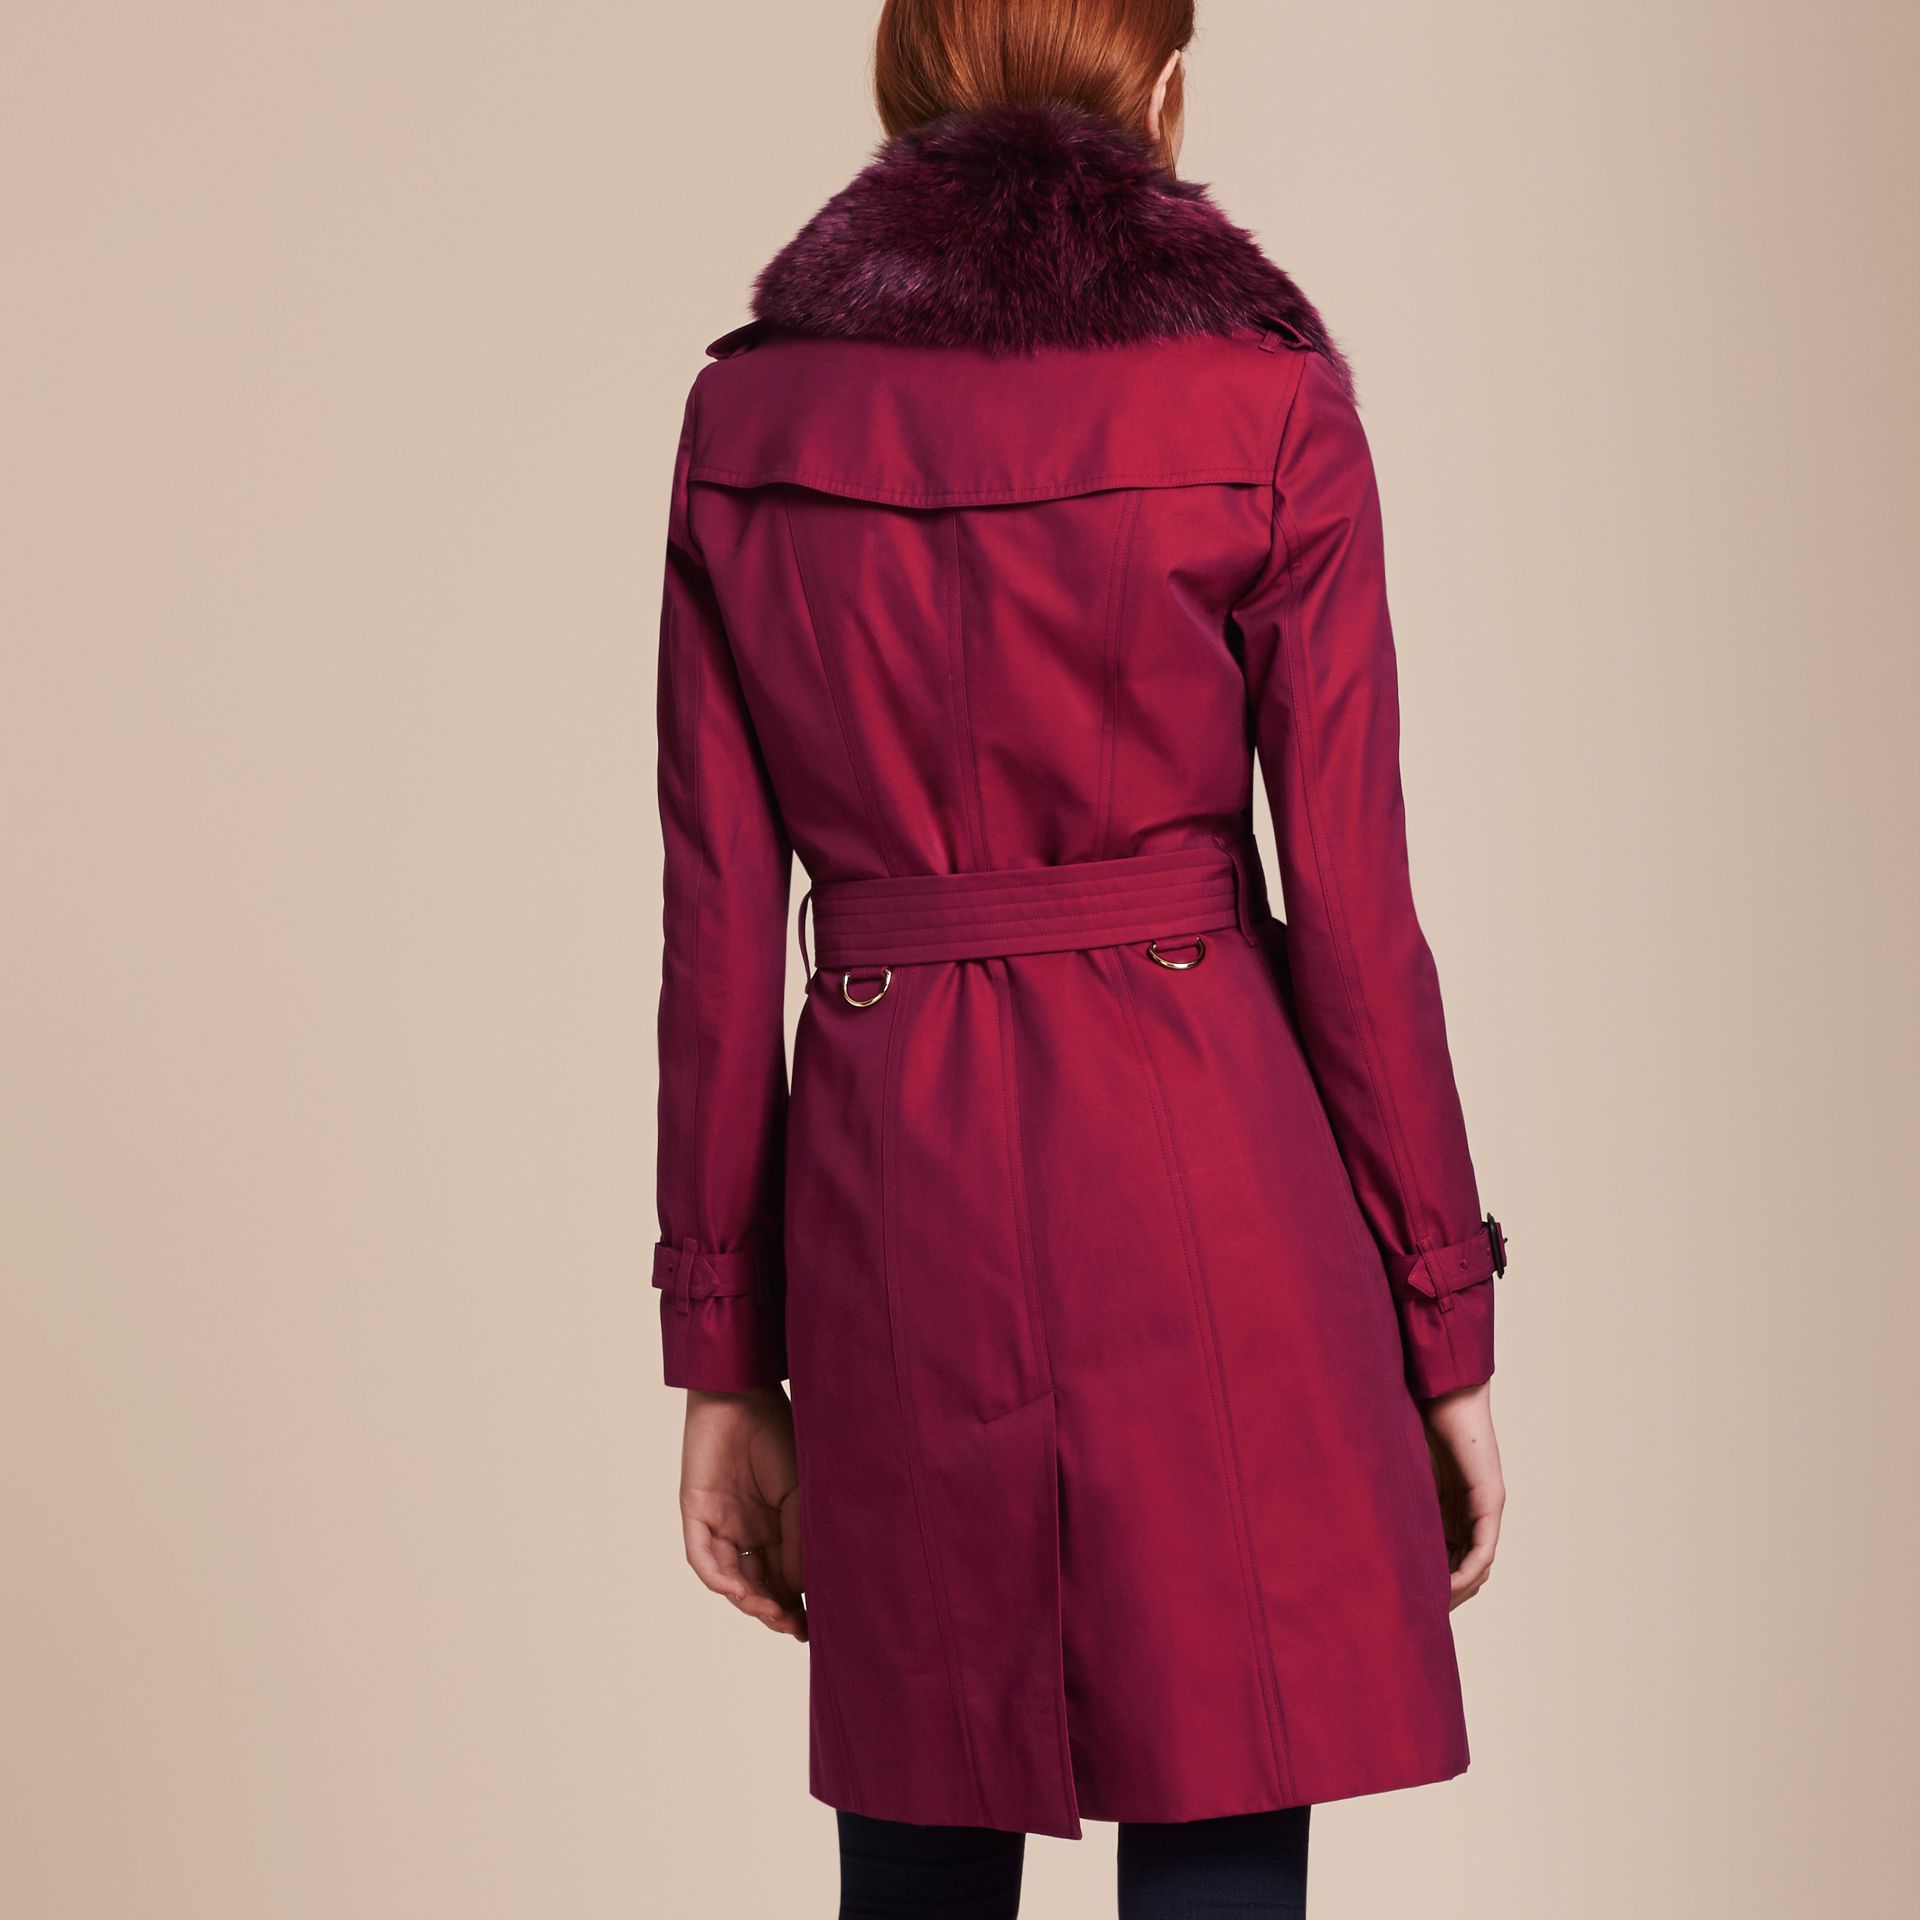 Crimson Cotton Gabardine Trench Coat with Detachable Fur Trim Crimson - photo de la galerie 3